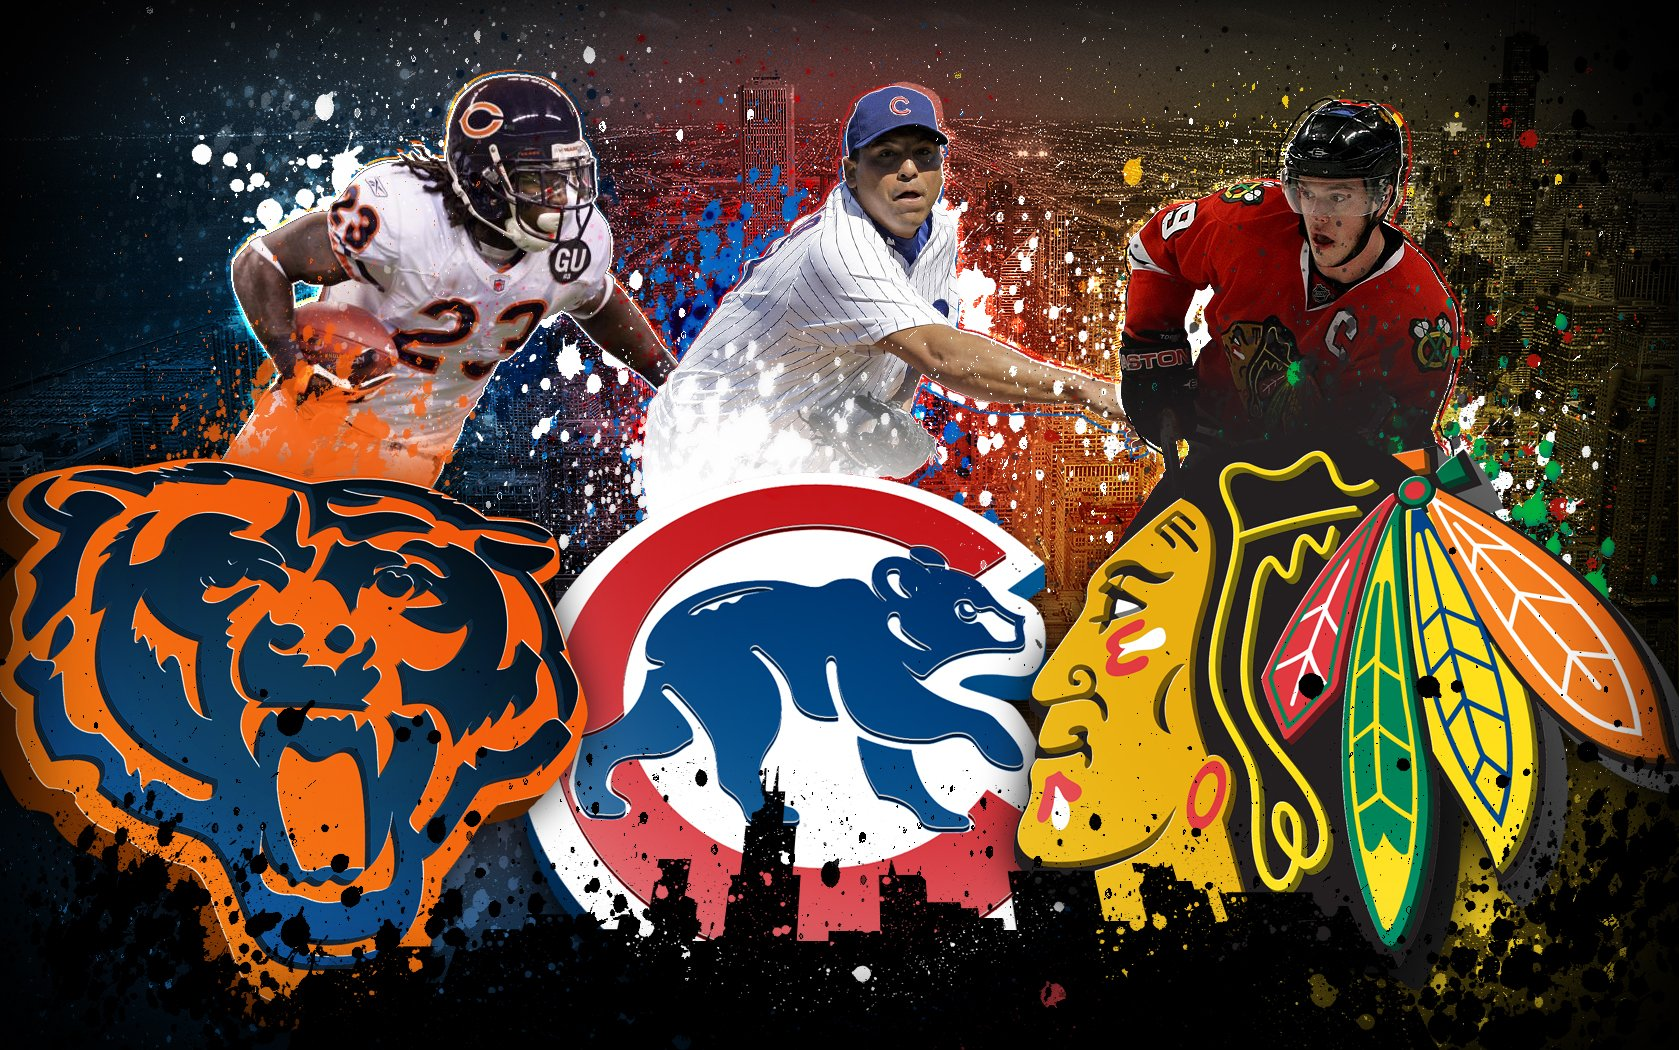 Chicago Bears wallpaper background Chicago Bears wallpapers 1679x1050